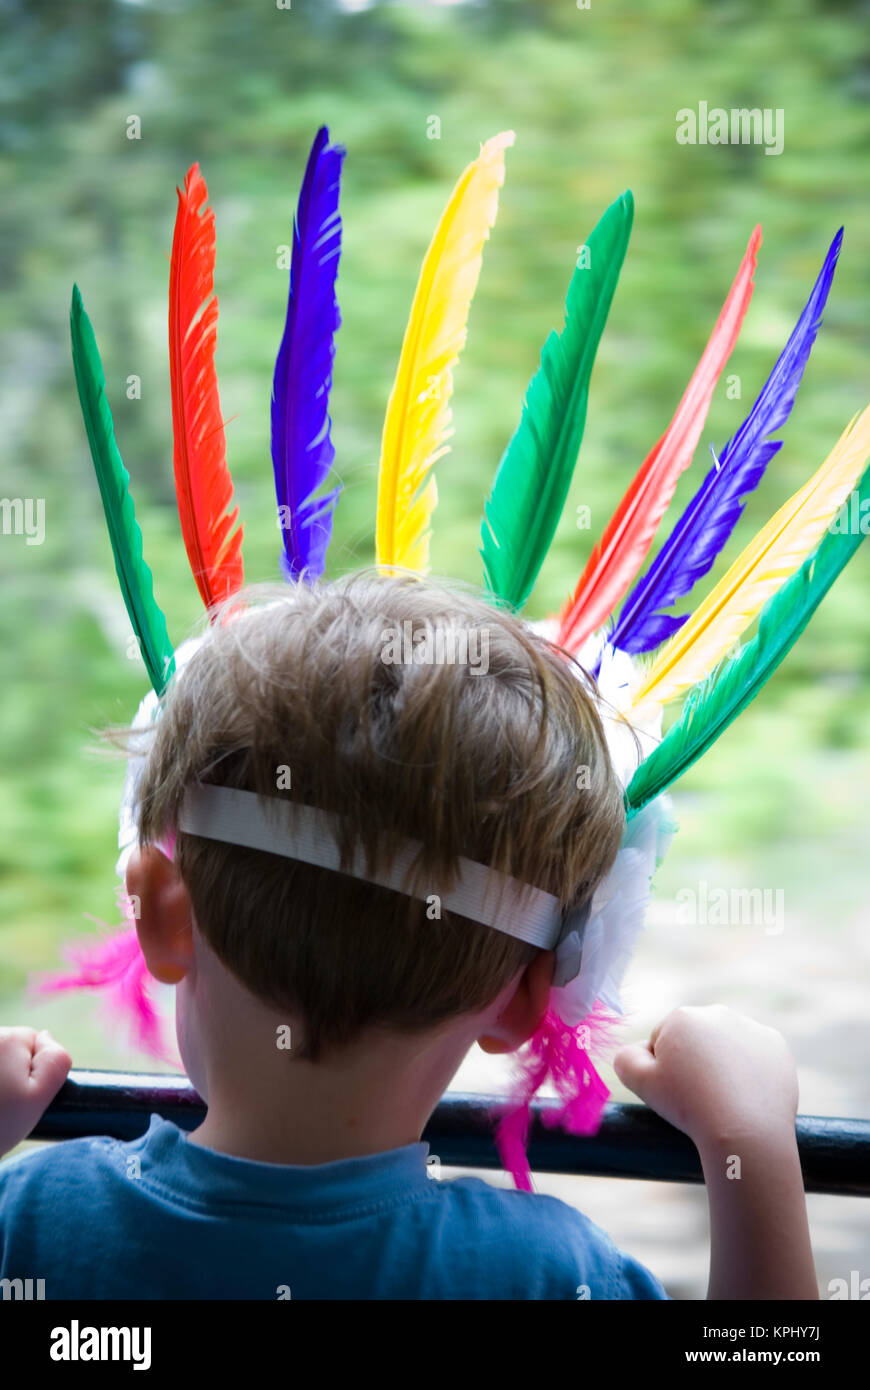 rear shot of young boy looking out of moving train's window with his head adorned with colourful feather headress - Stock Image